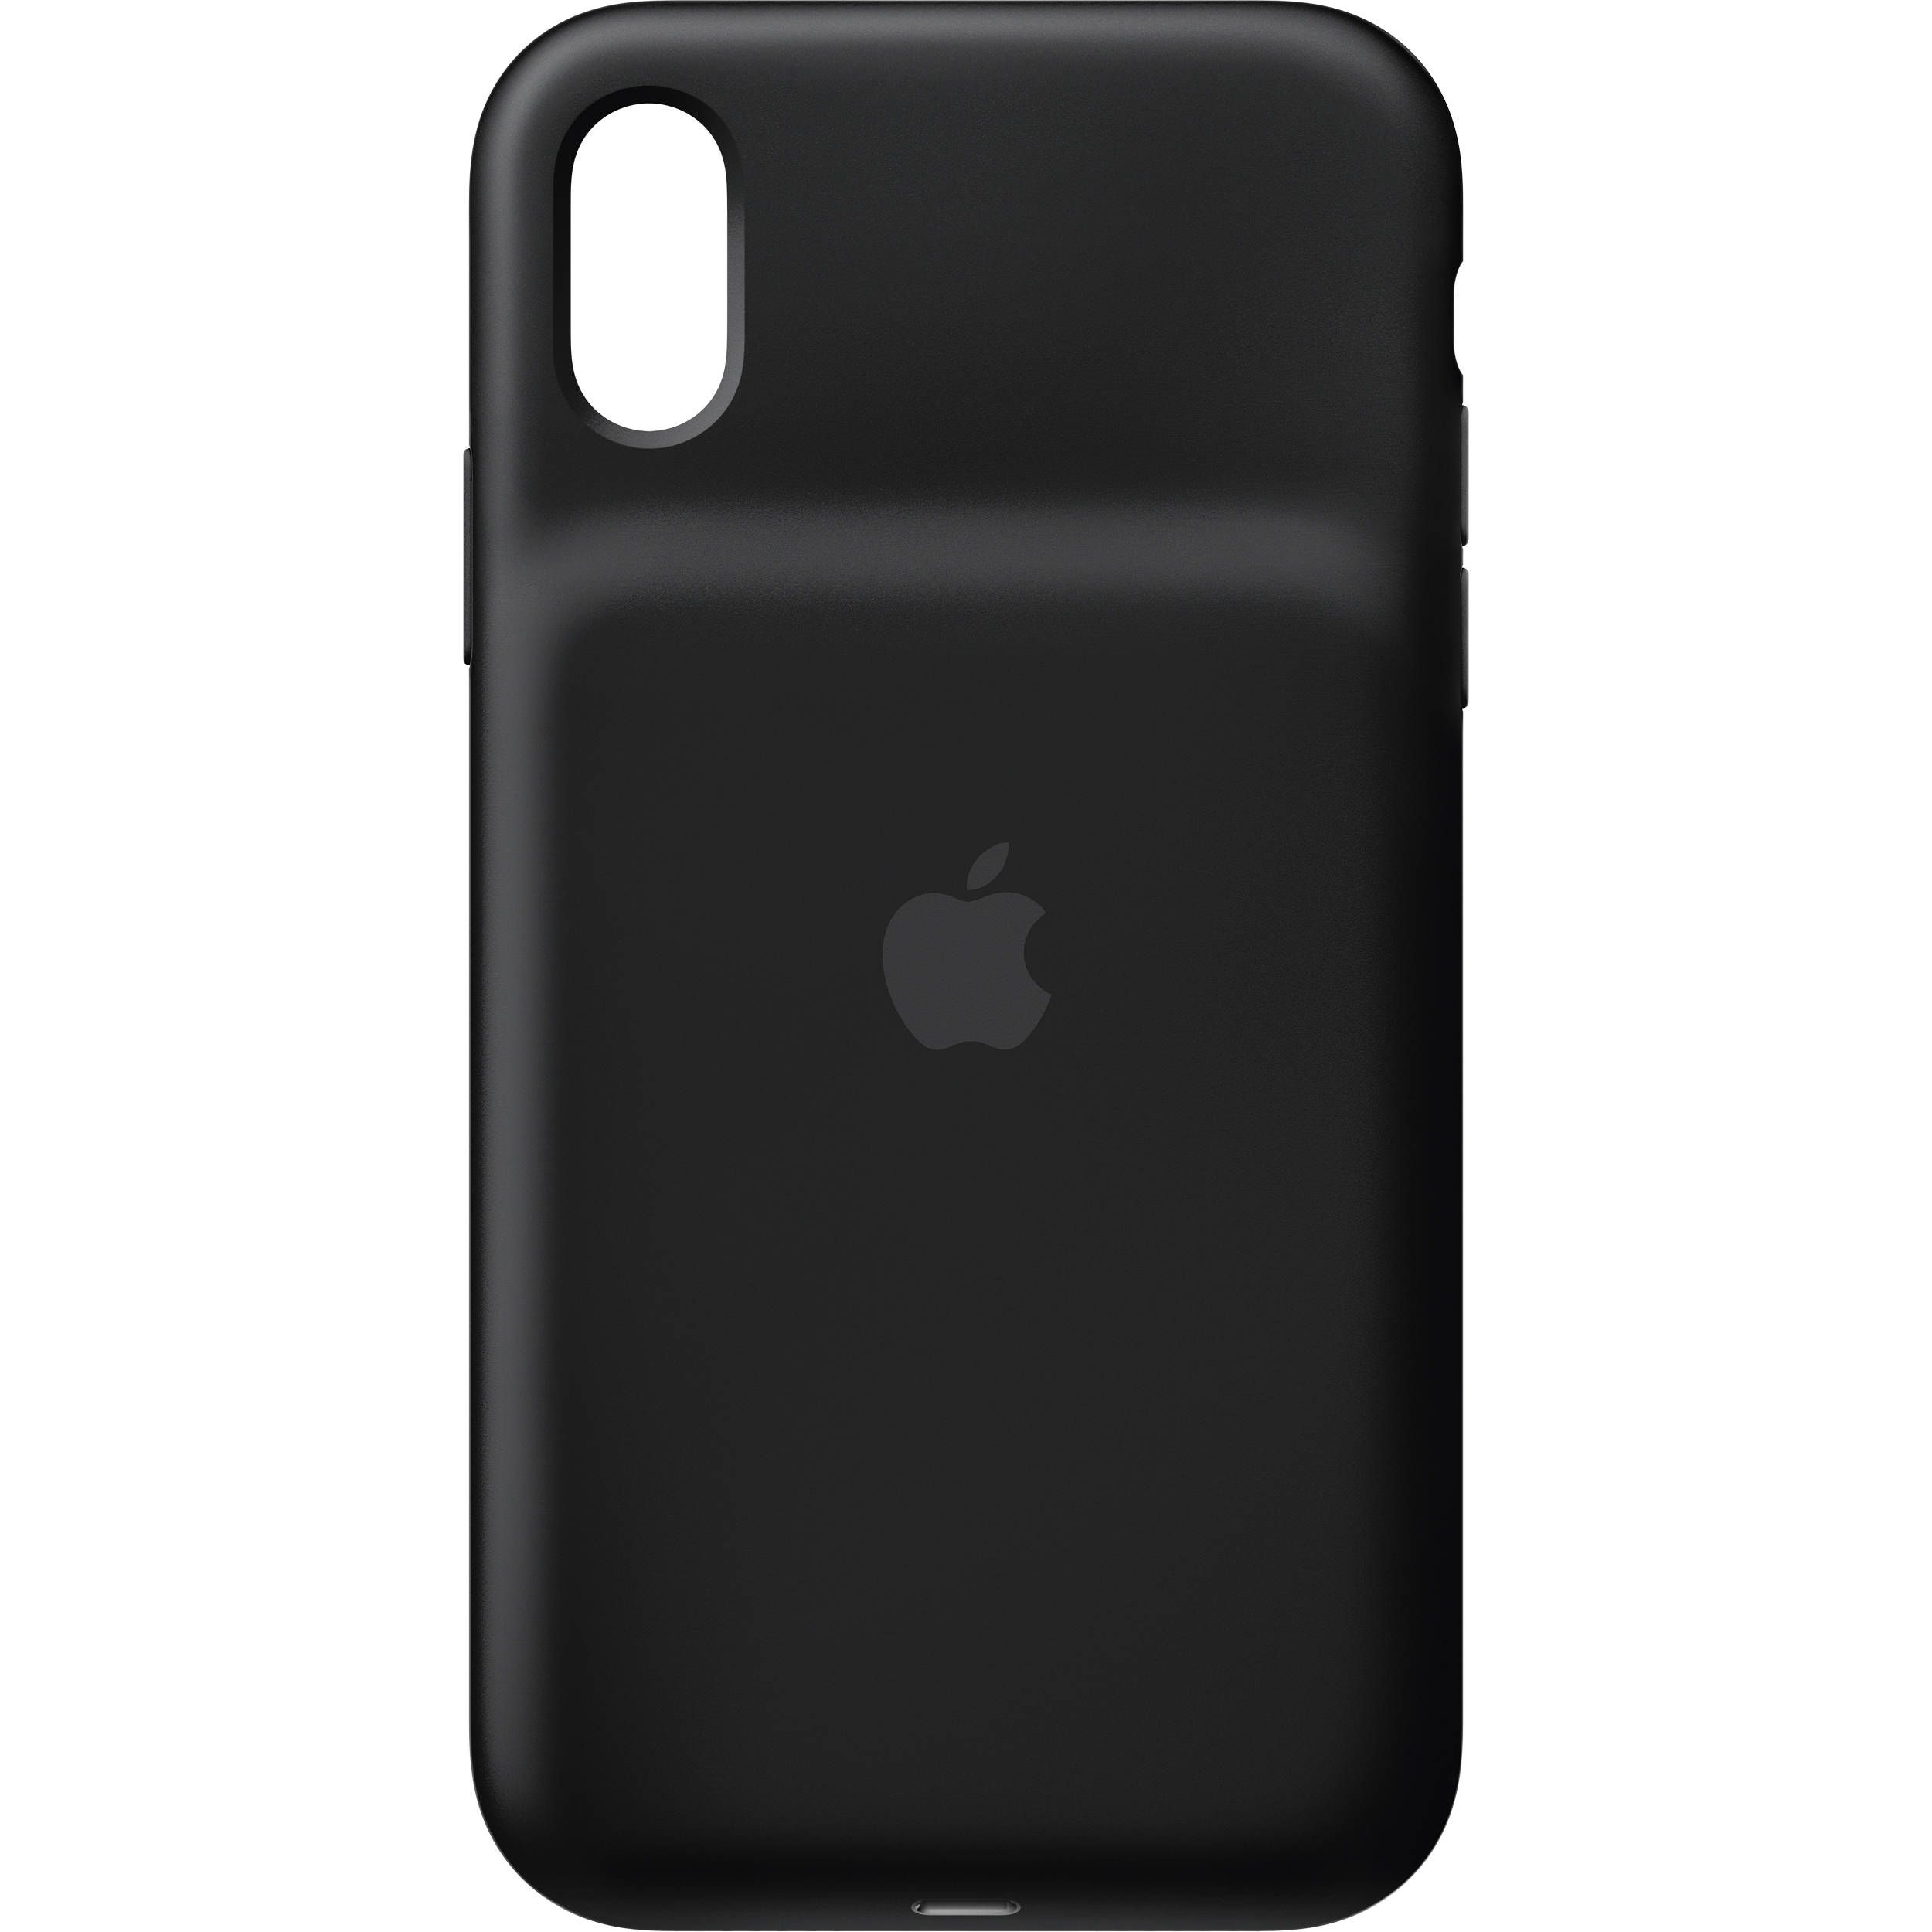 Reviewing Iphone Xr From Walmart Apple Iphone Iphone Battery Cases